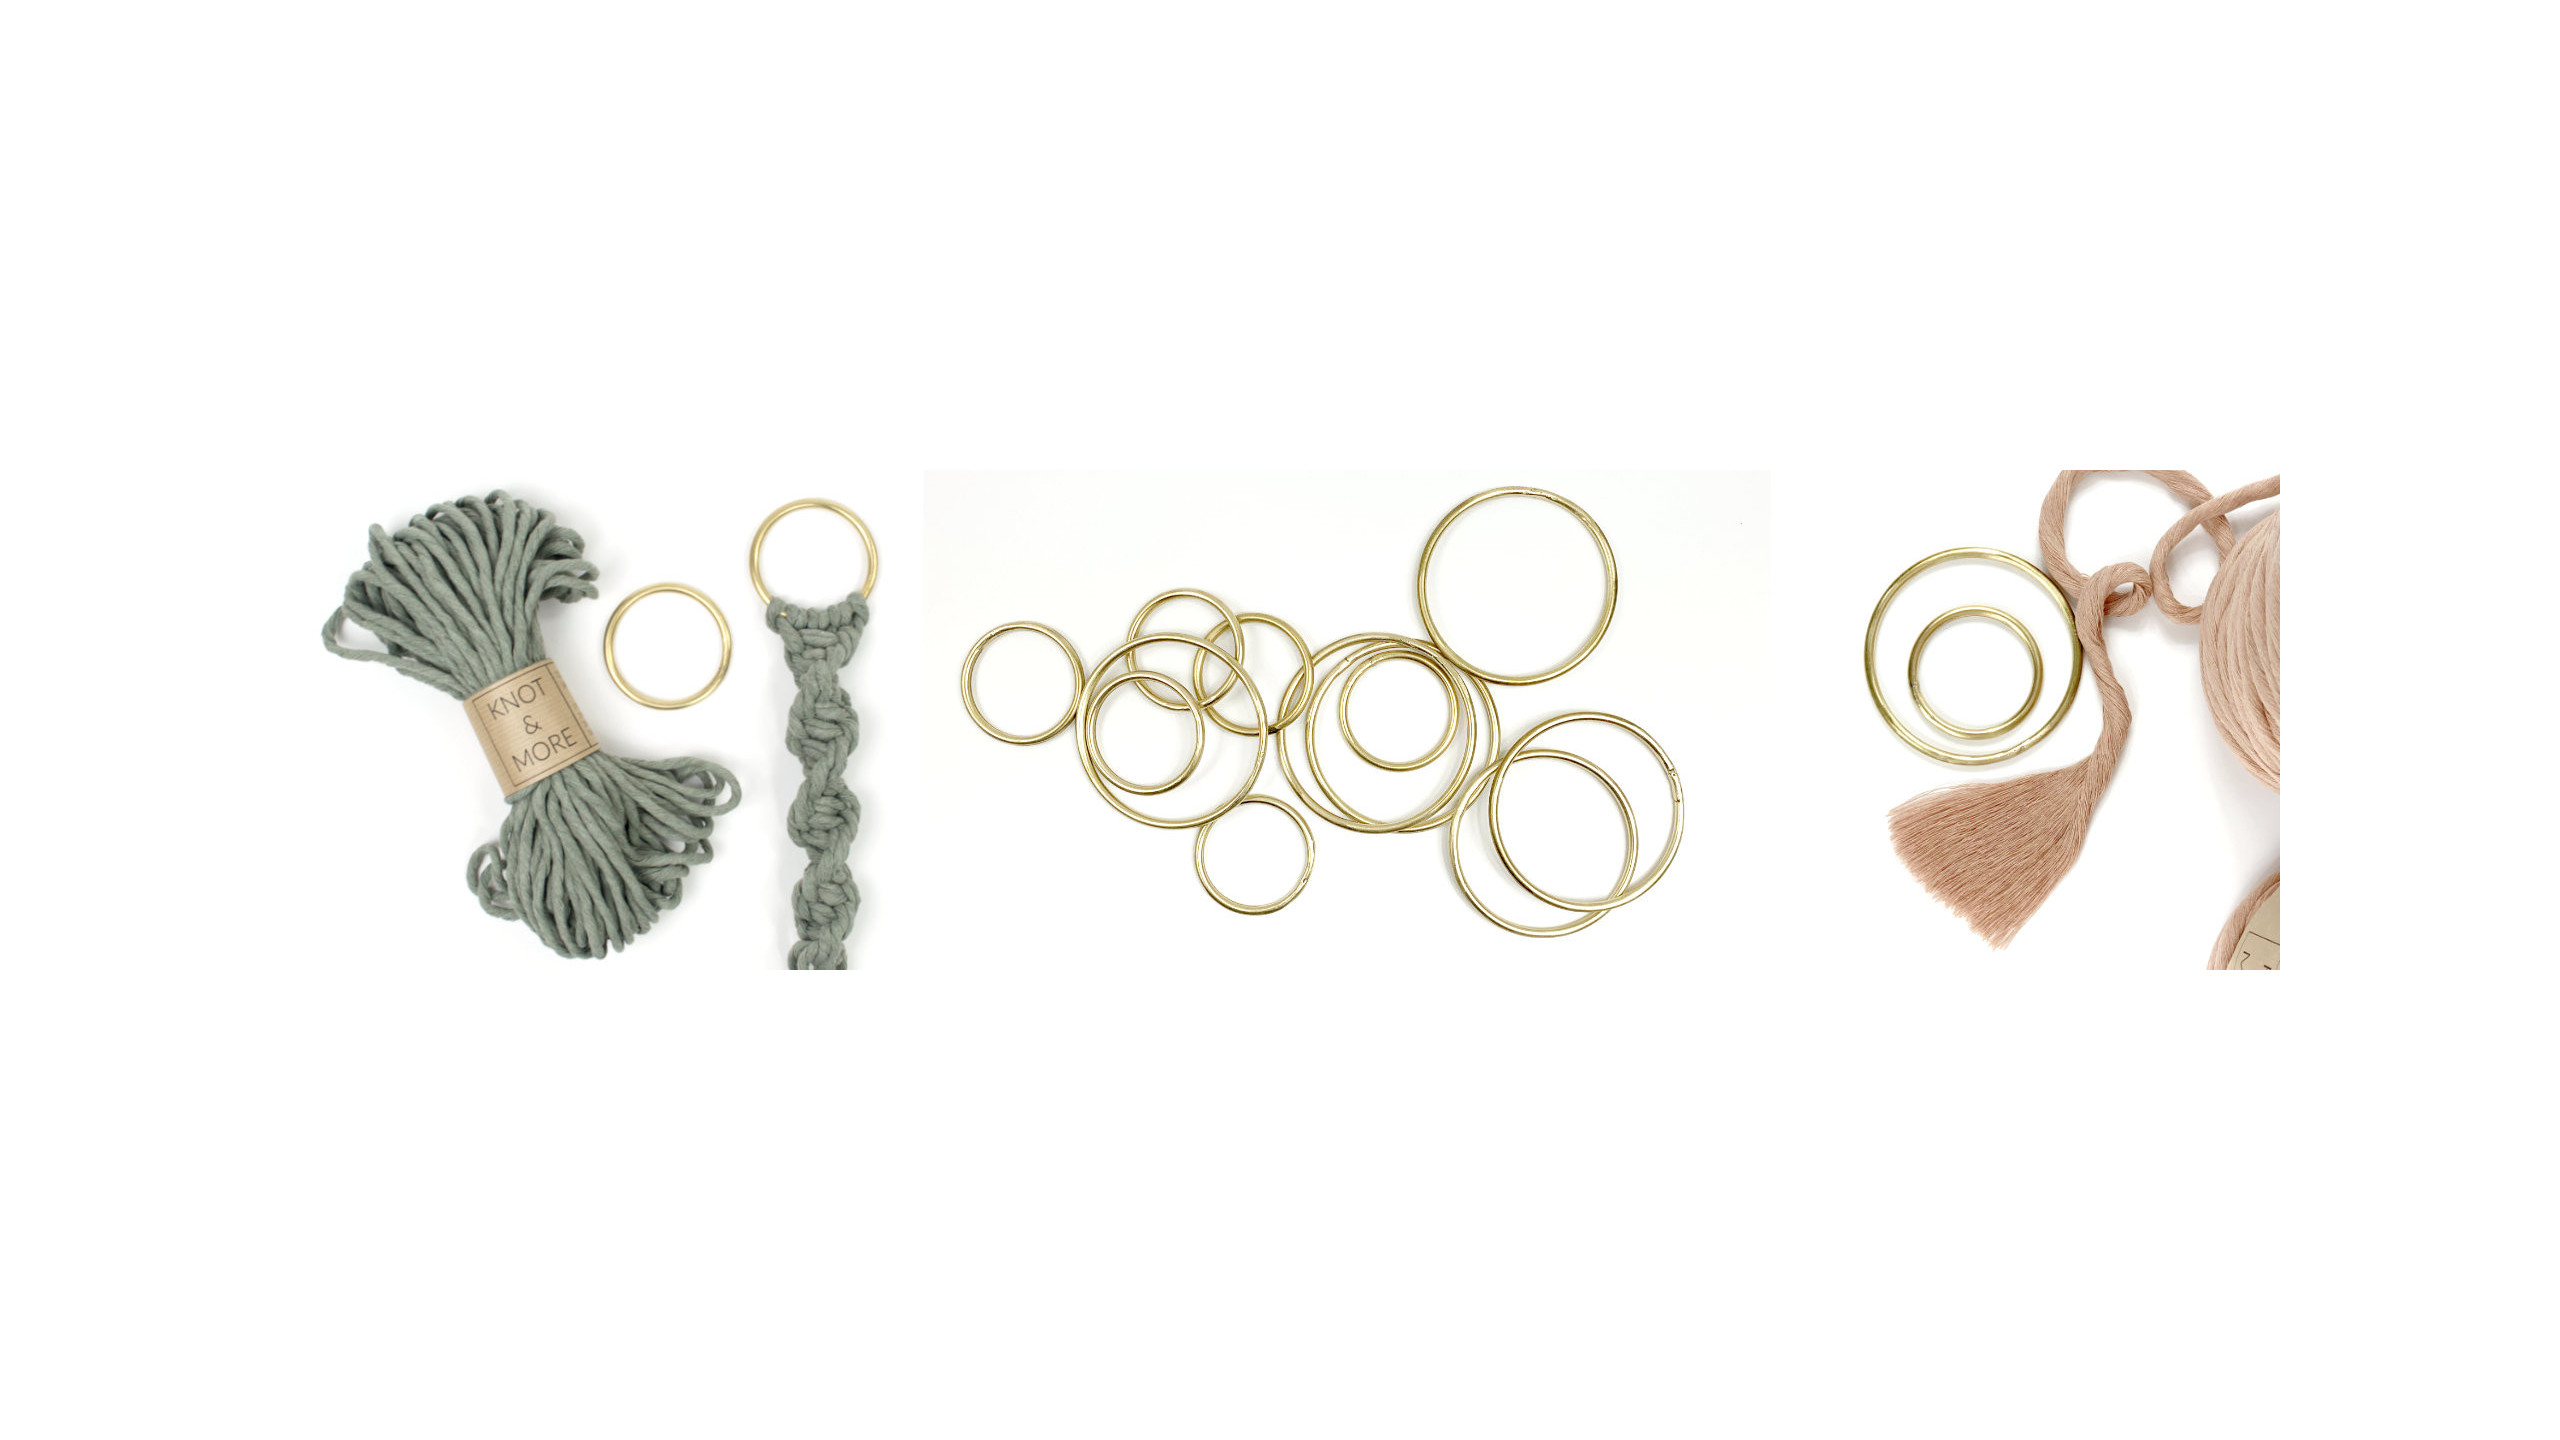 Macrame accessories - Knot and More